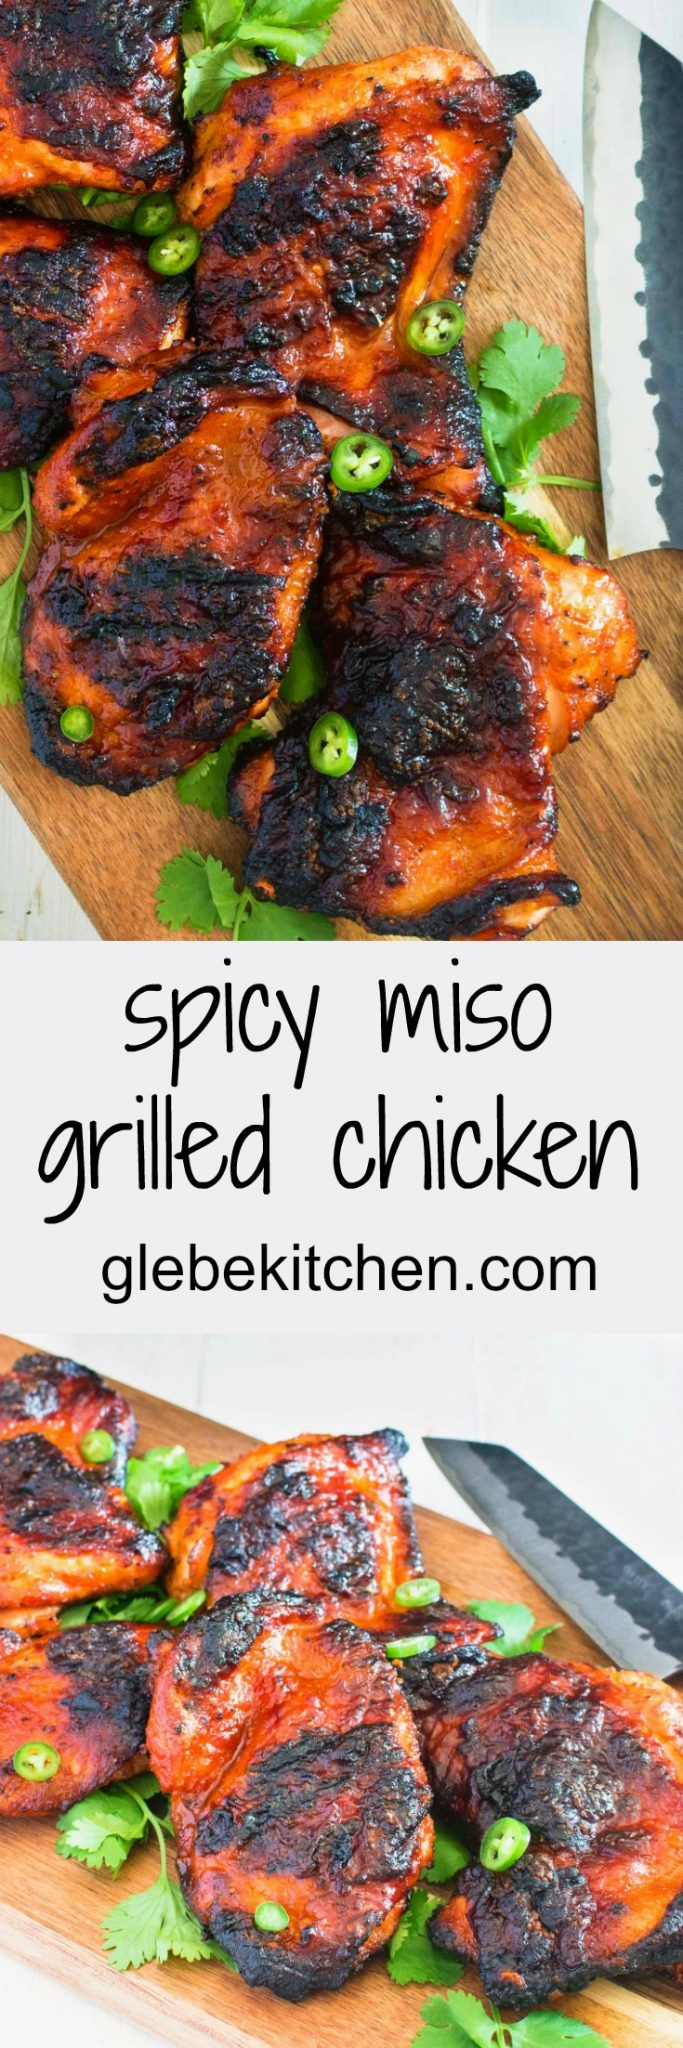 Spicy miso grilled chicken explodes with Korean flavours.